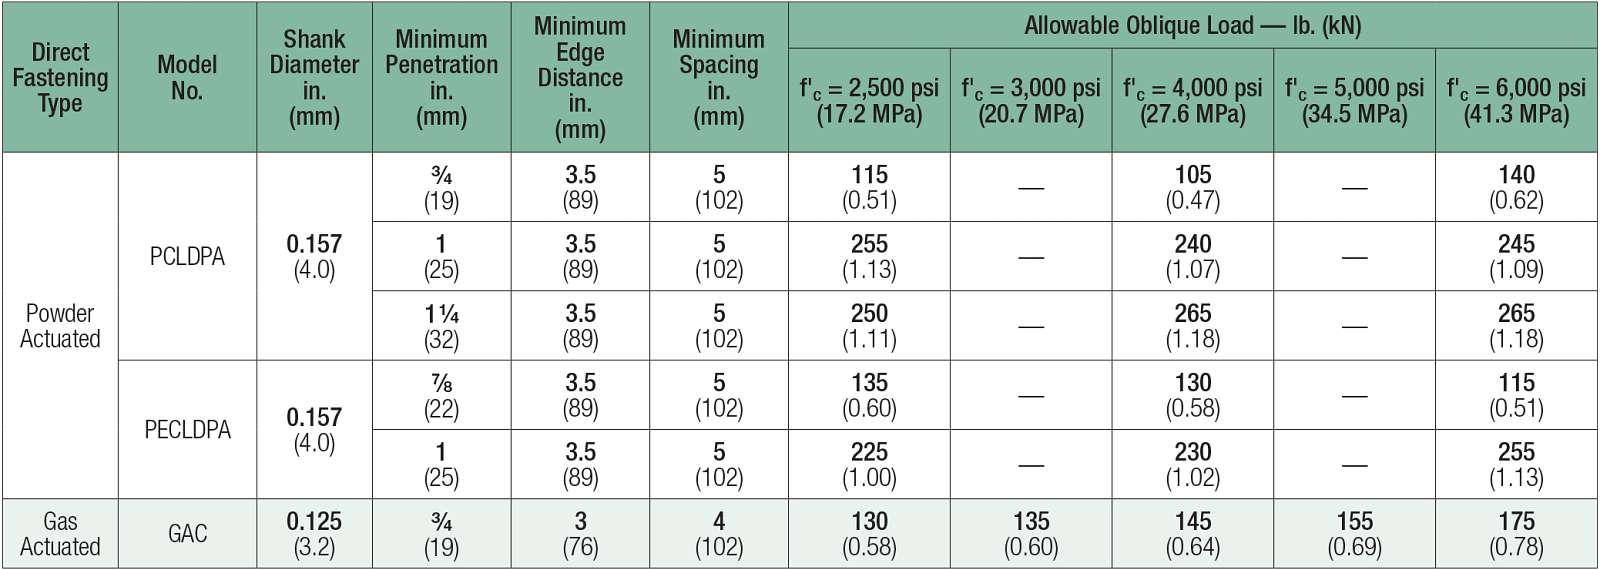 Table: Powder-Actuated and Gas-Actuated Assemblies — Allowable Oblique Loads in Normal-Weight Concrete